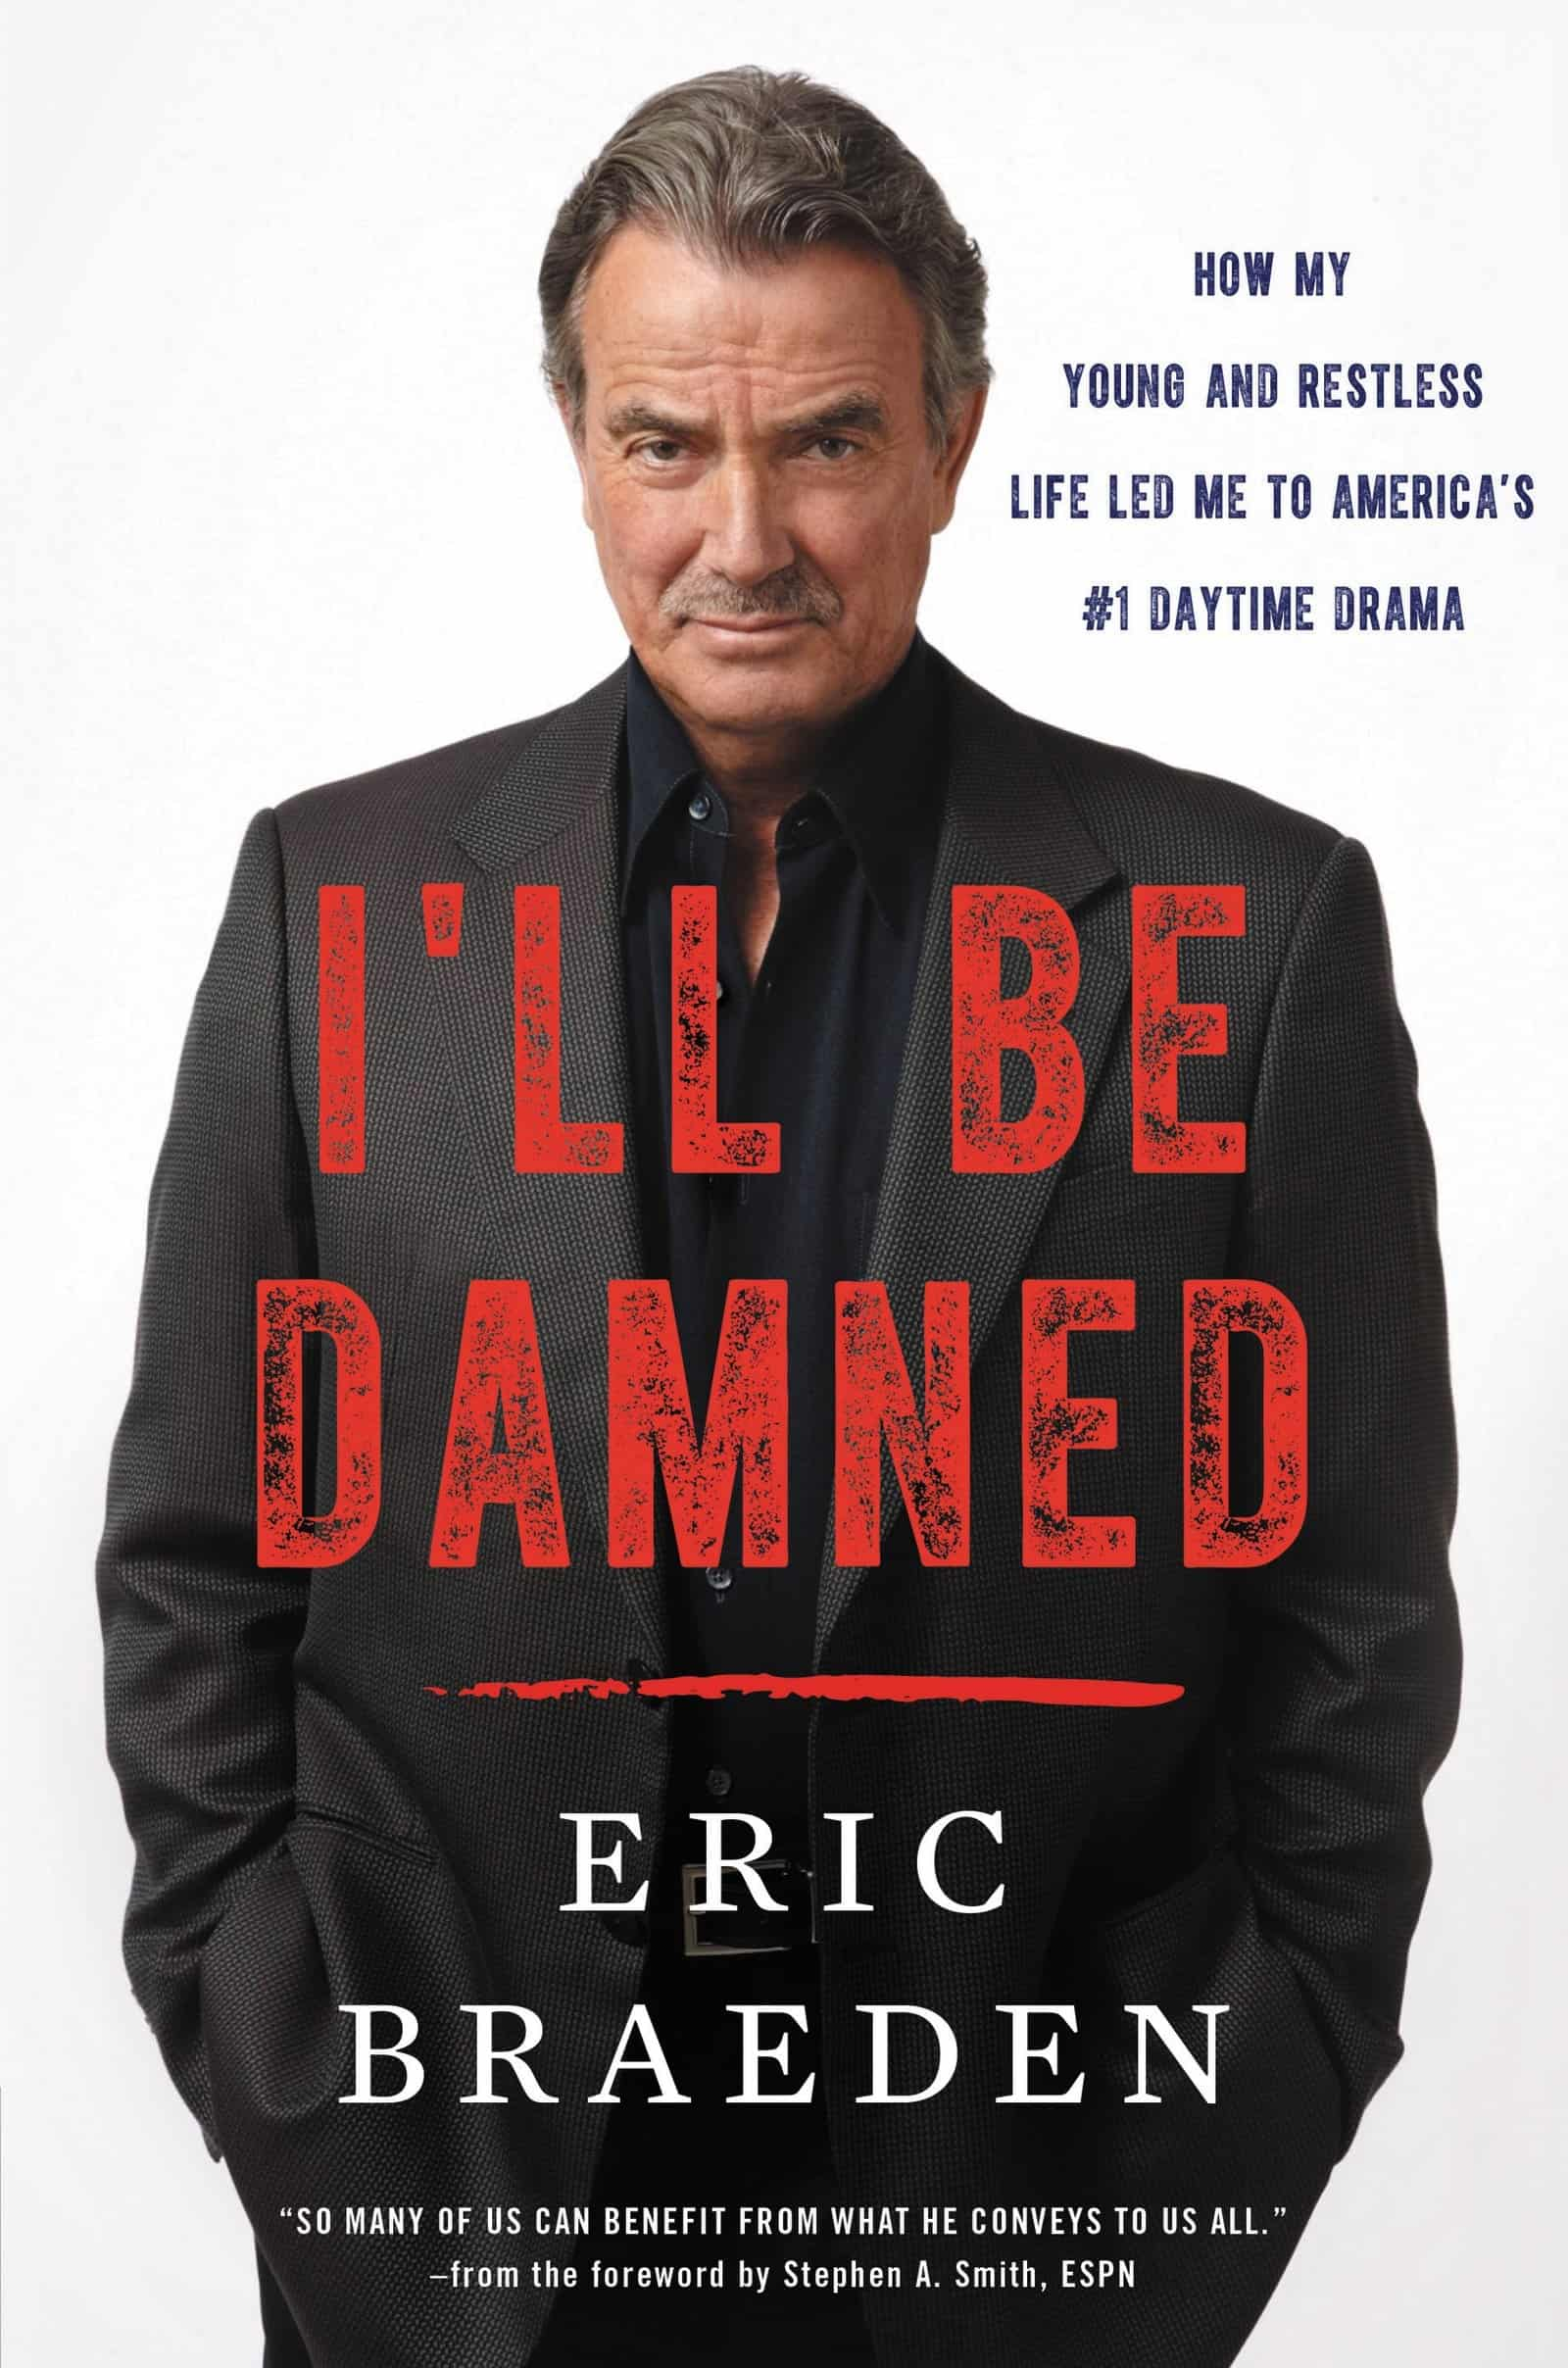 2 Eric Braeden autobiography cover, I'll Be Damned How My Young and Restless Life Led Me to America's #1 Daytime Drama - provided by publicist